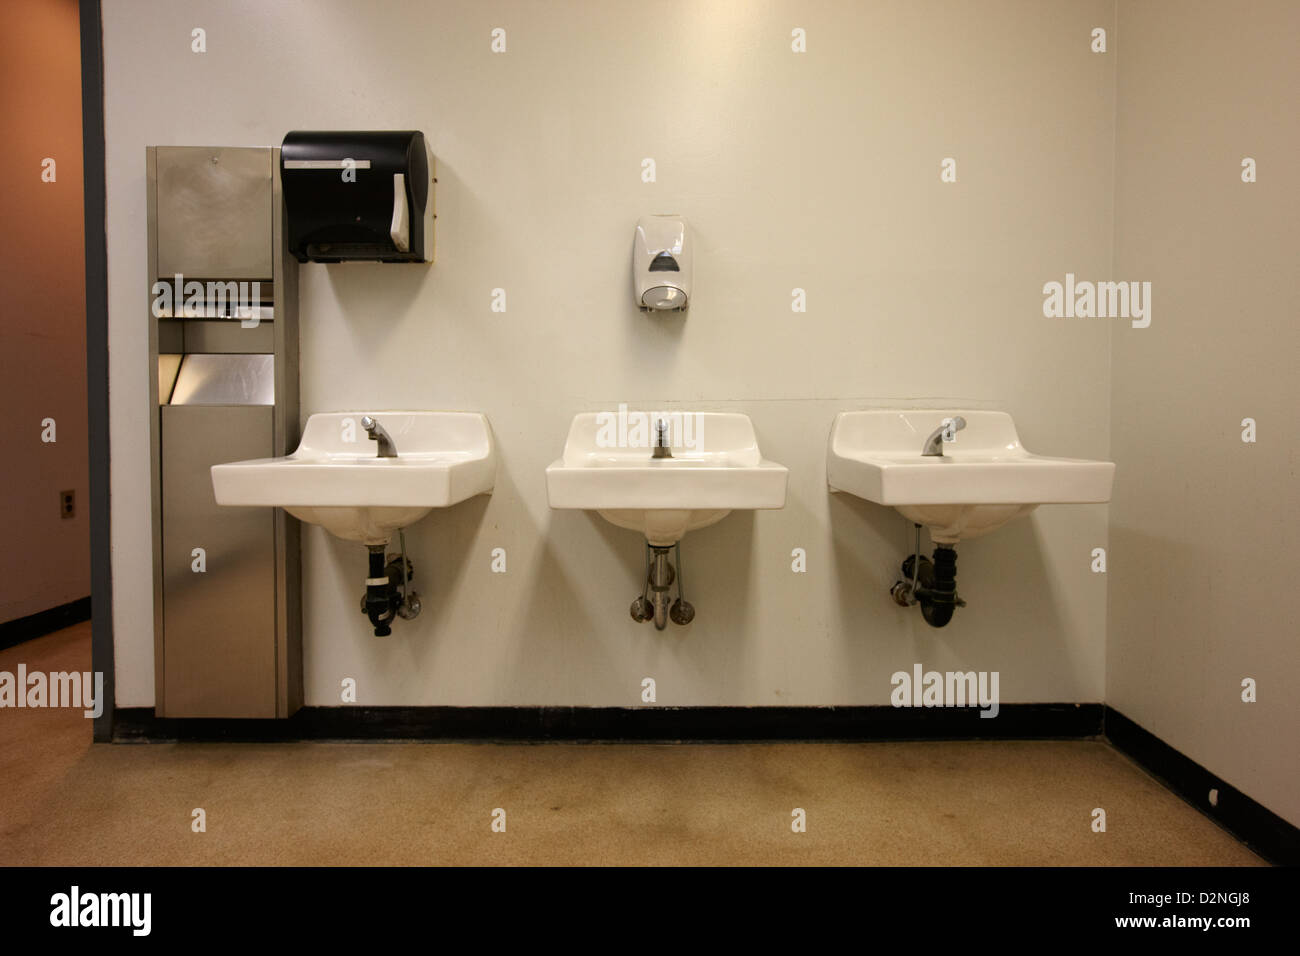 row of sinks in mens washroom High school canada north america - Stock Image